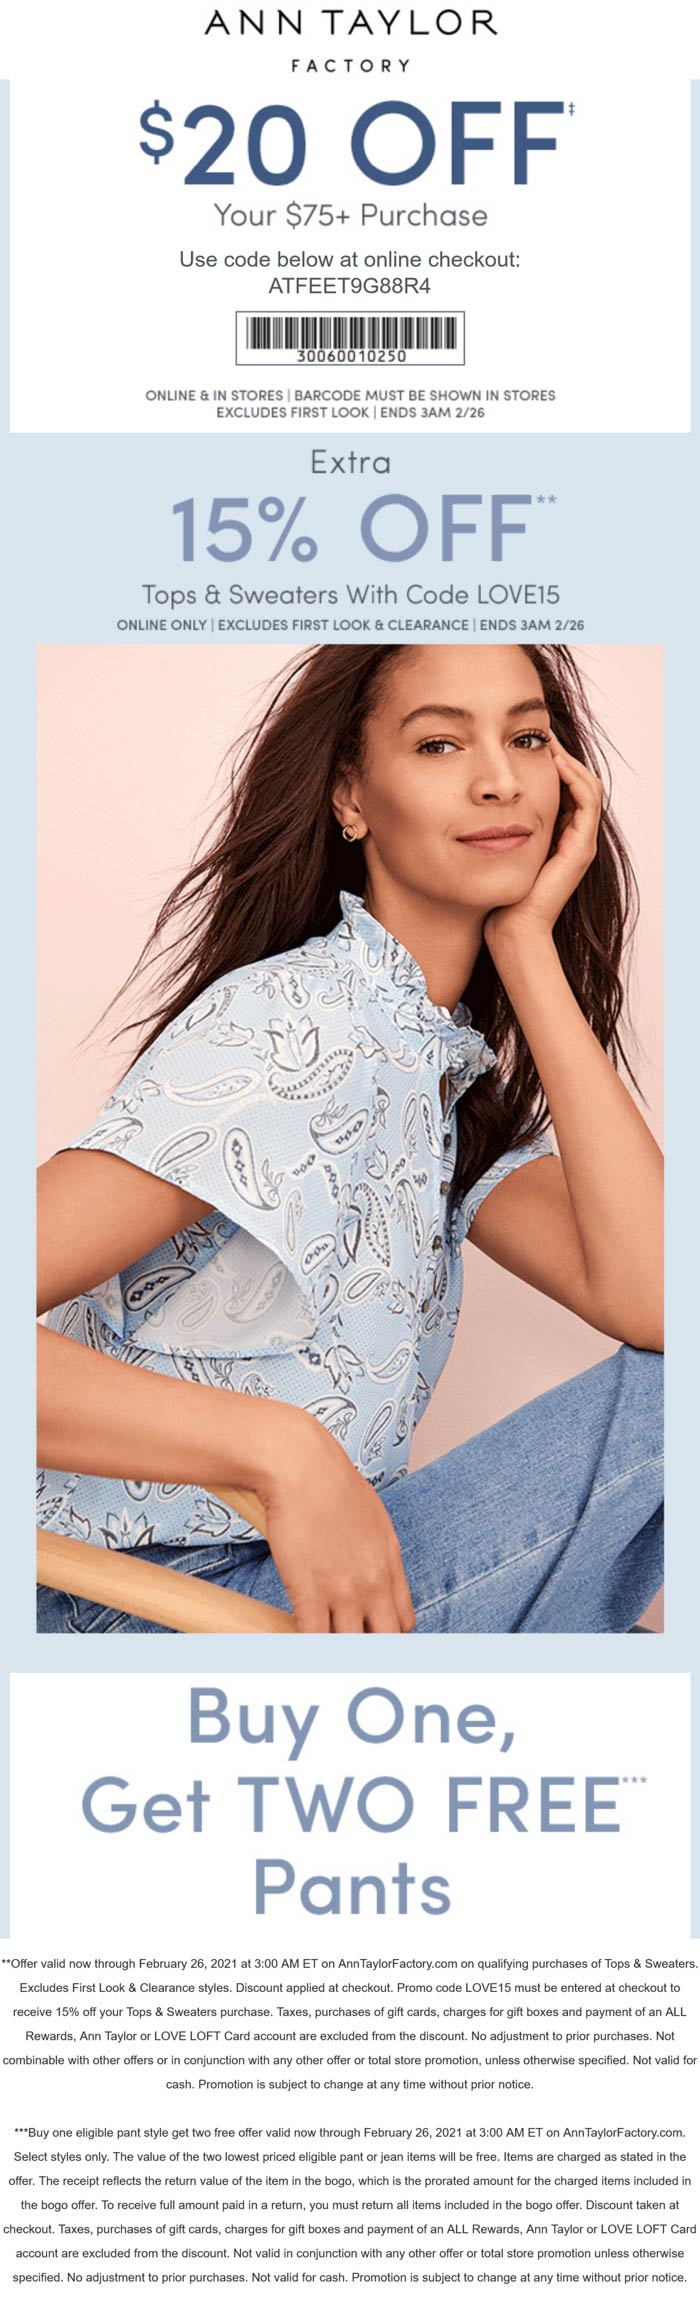 Ann Taylor Factory stores Coupon  $20 off $75 & more today at Ann Taylor Factory, or online via promo code ATFEET9G88R4 #anntaylorfactory